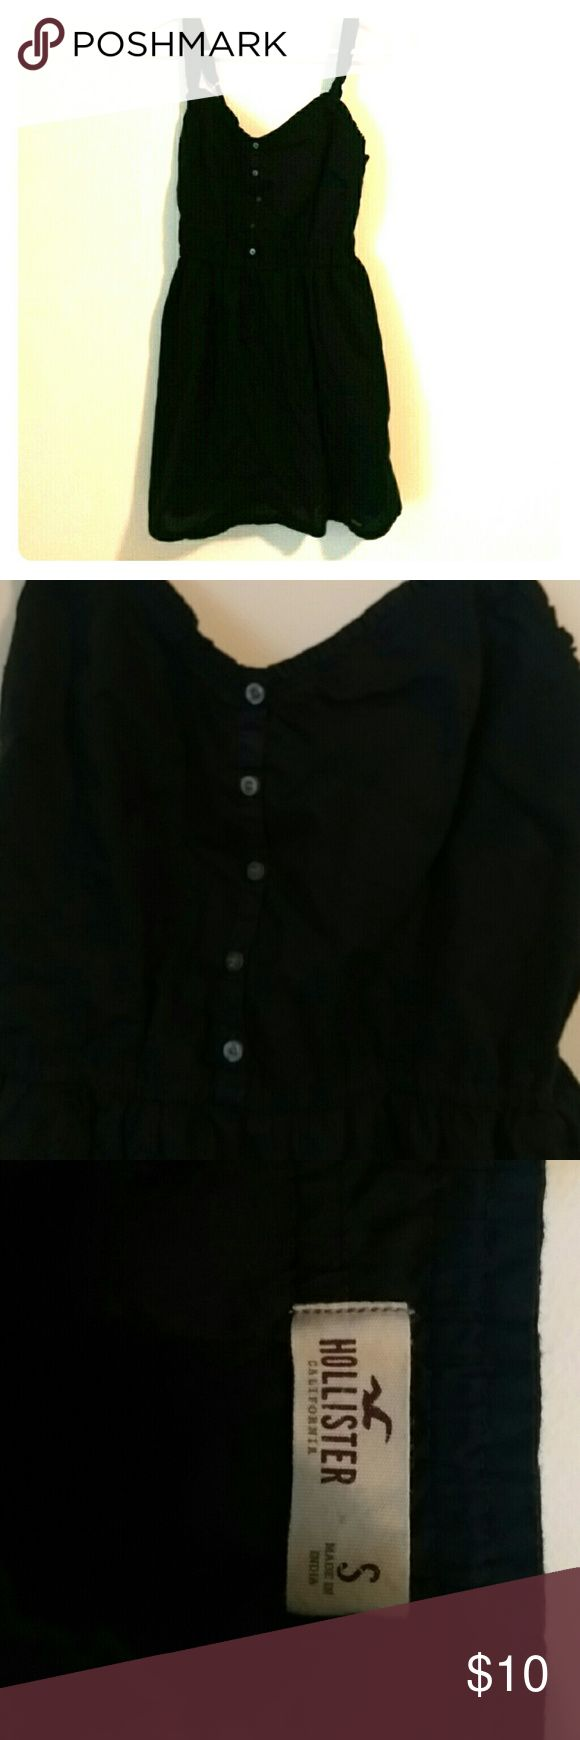 Dark Navy blue Hollister dress Dark Navy blue Hollister dress with about 1 inch straps and buttons down the front with a small flower print detail that the picture couldn't show. Worn once in awesome condition size small Hollister Dresses